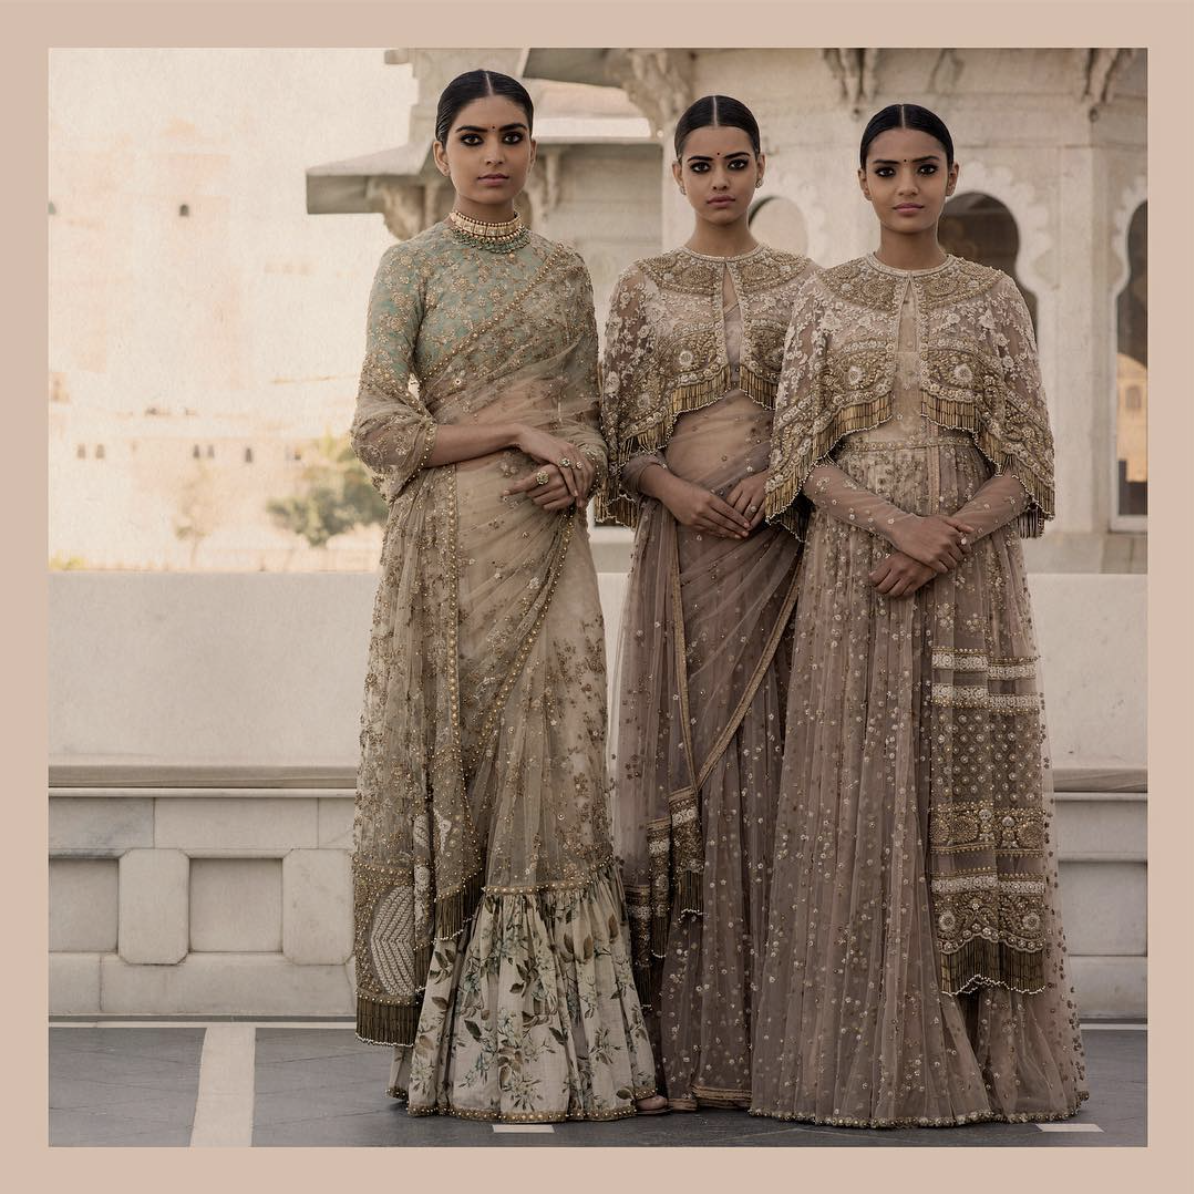 From Sabyasachi Mukherjee's  Instagram : The Udaipur Collection